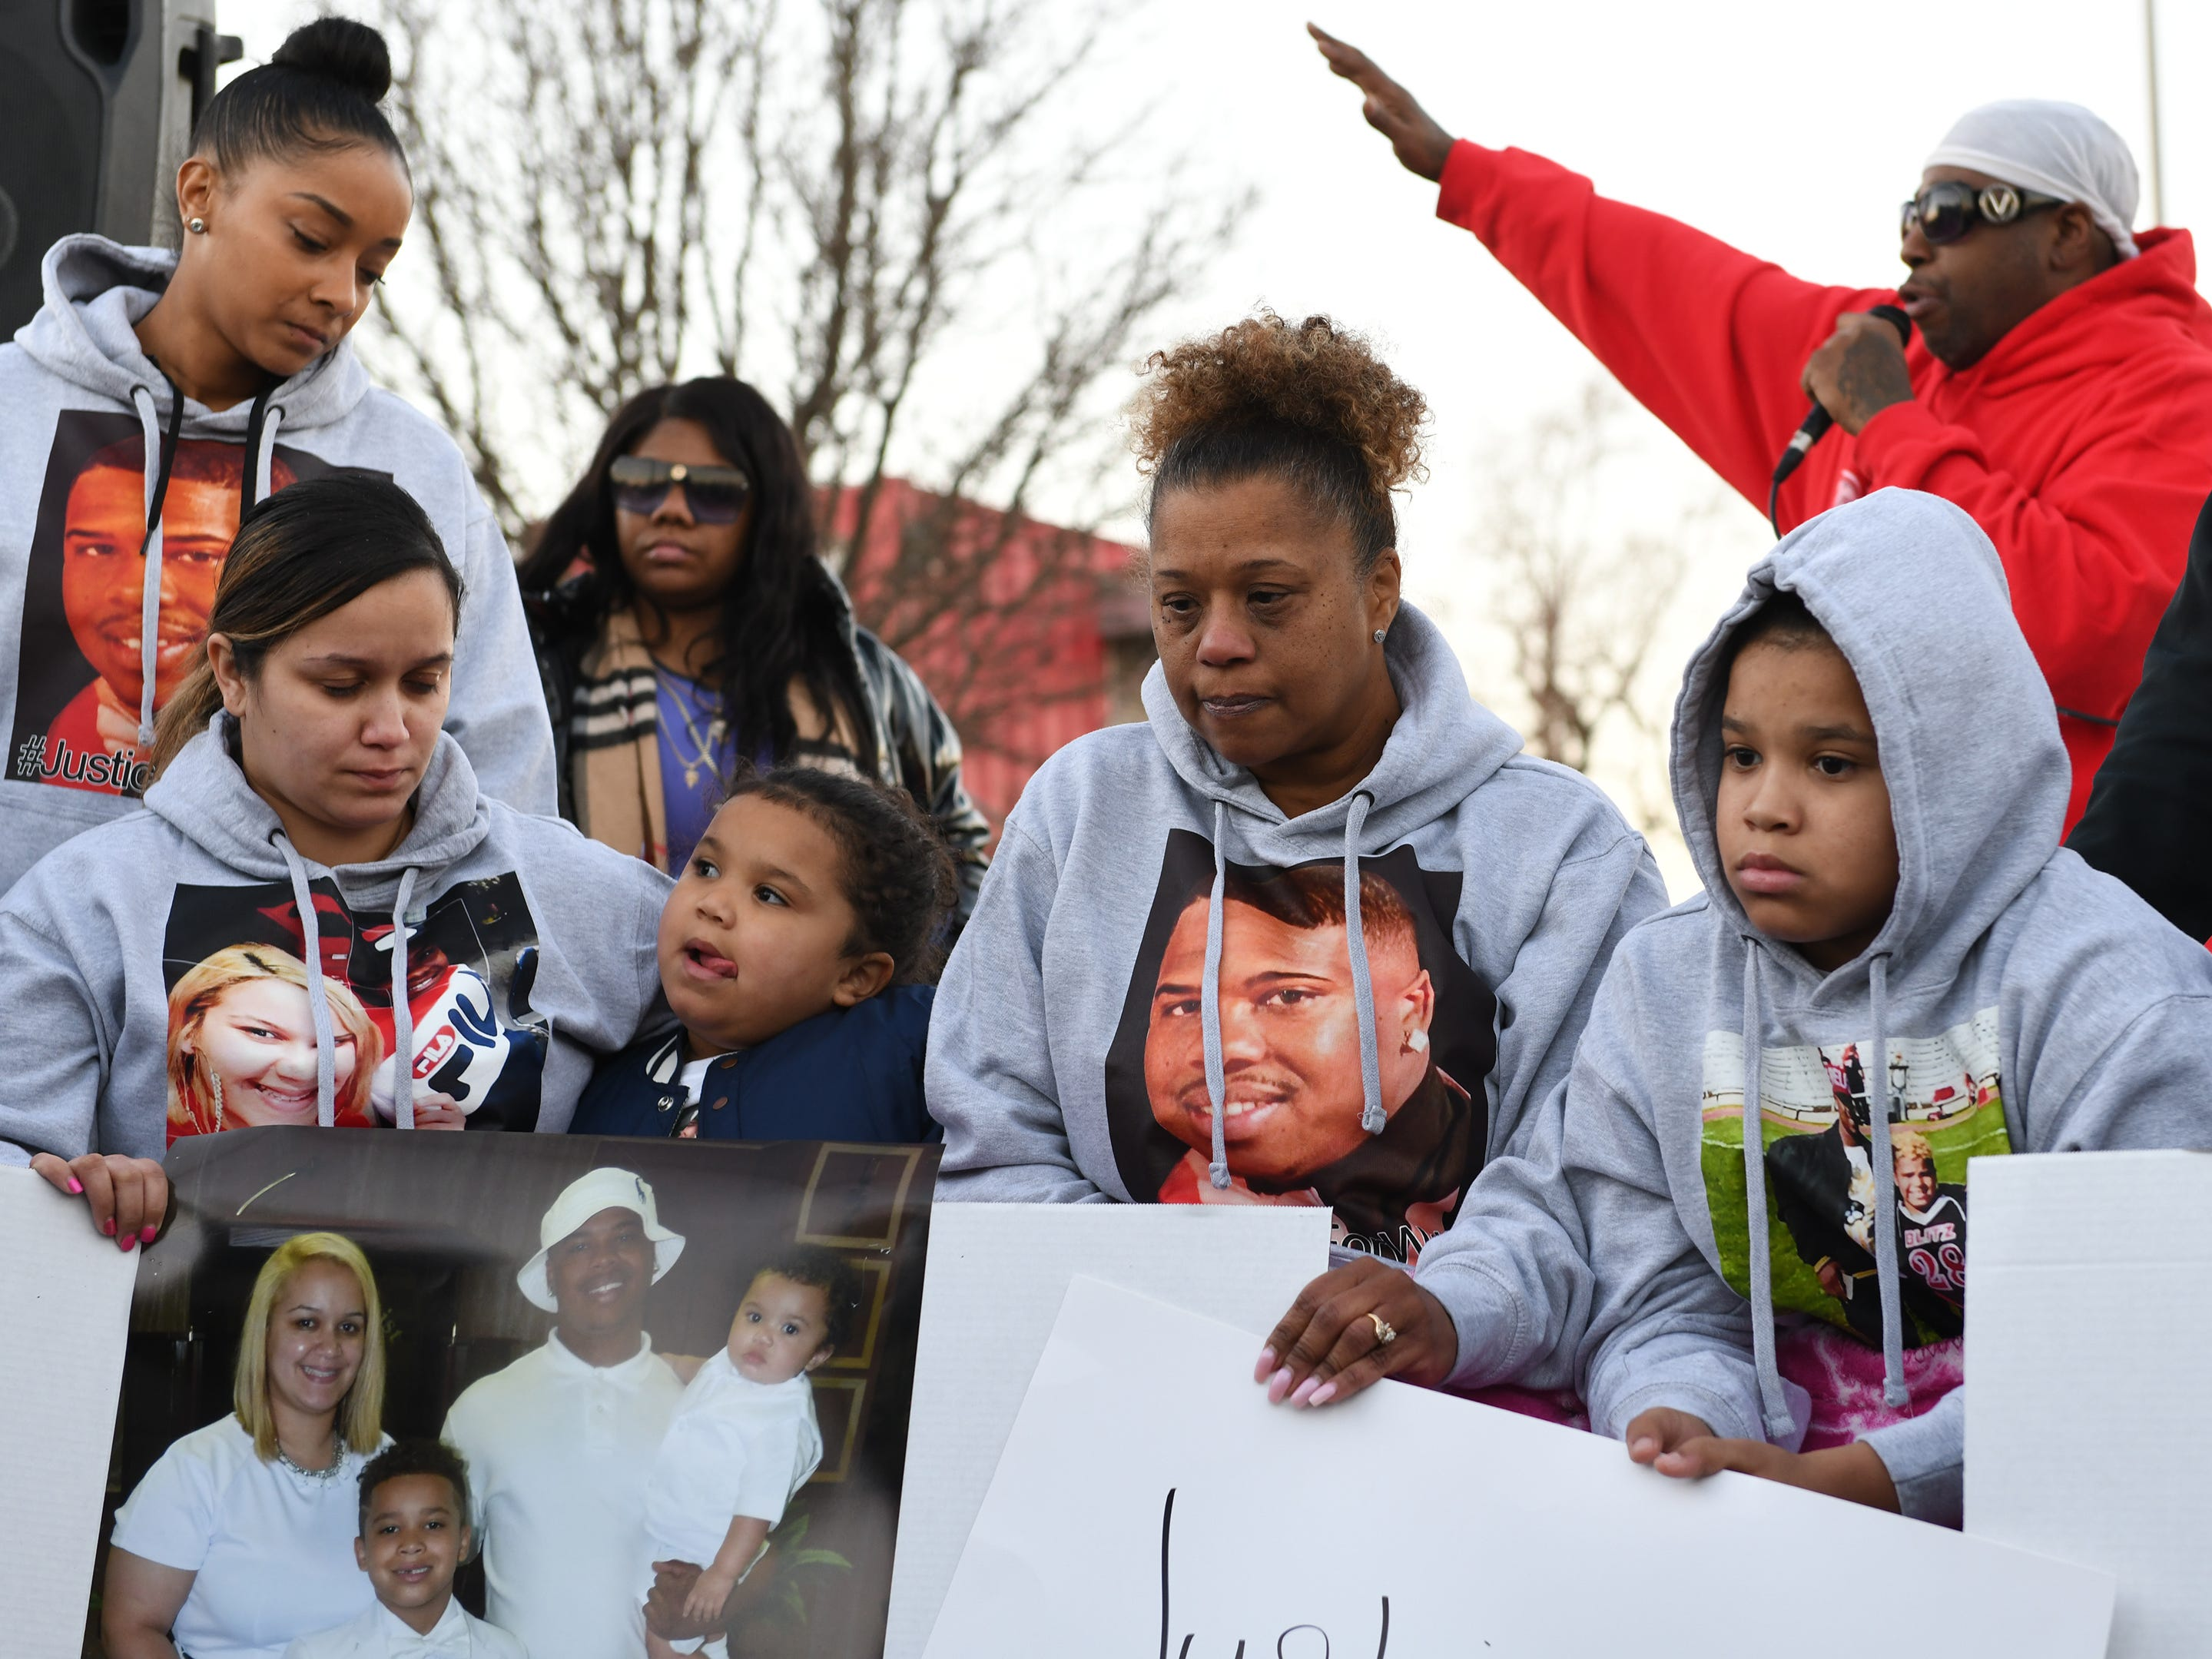 Walter L. Brown's family listen to Jeff Lindsey speak during a vigil at the Vineland Midget Football grounds on Monday, Feb. 4, 2019. Brown was fatally shot during a reported home invasion last week.